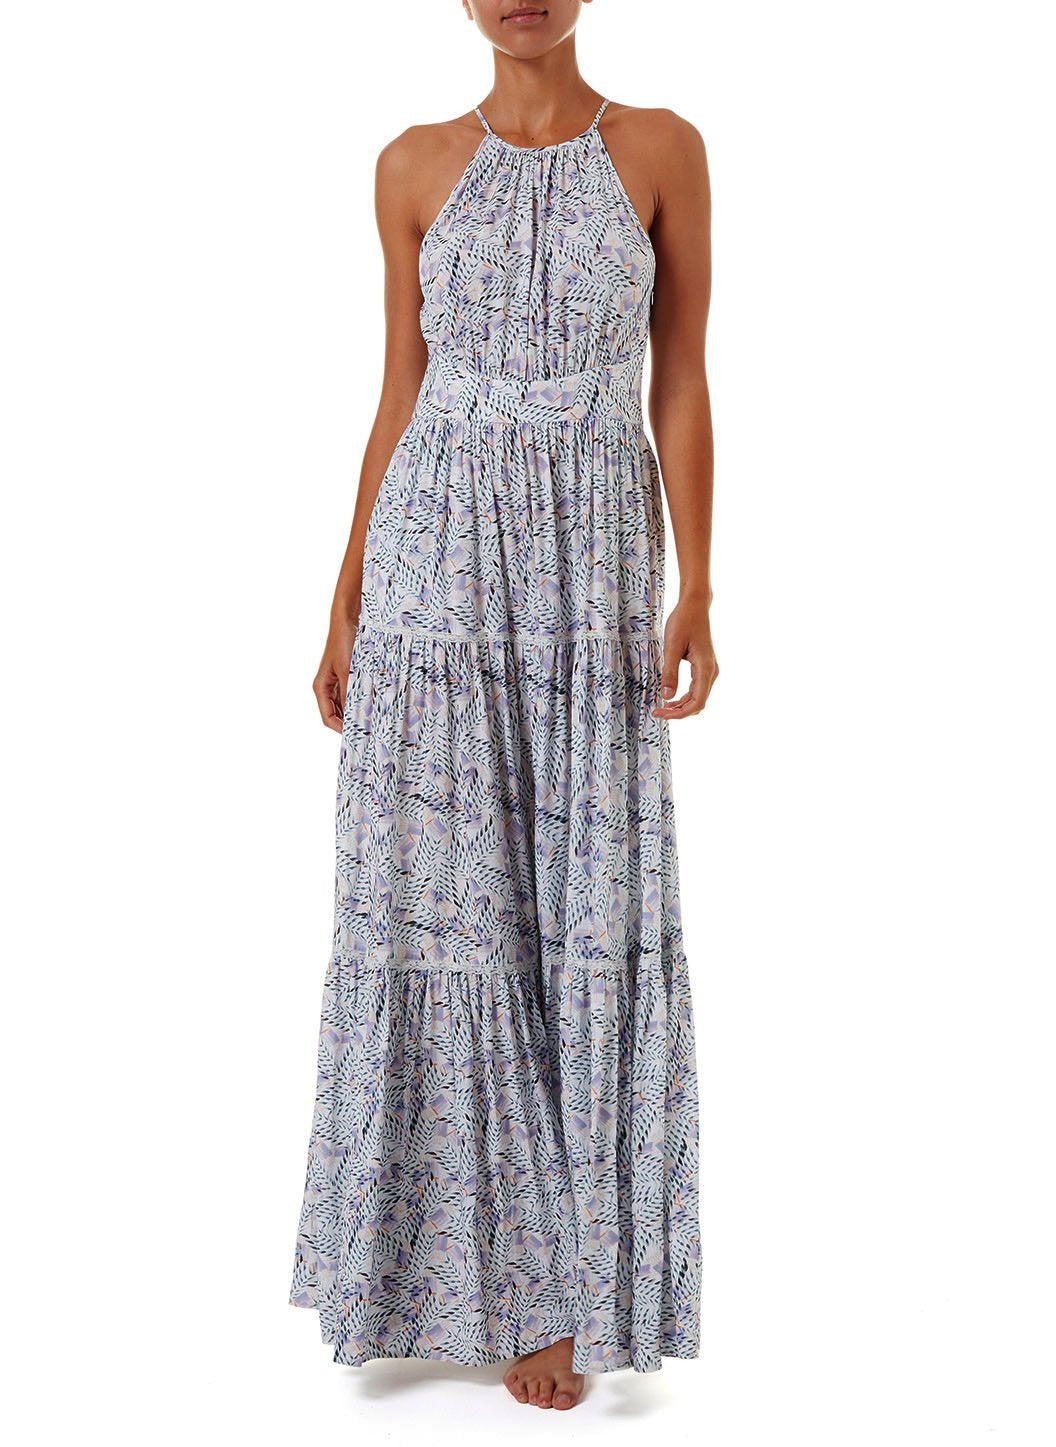 isadora azari high neck maxi dress 2019 F